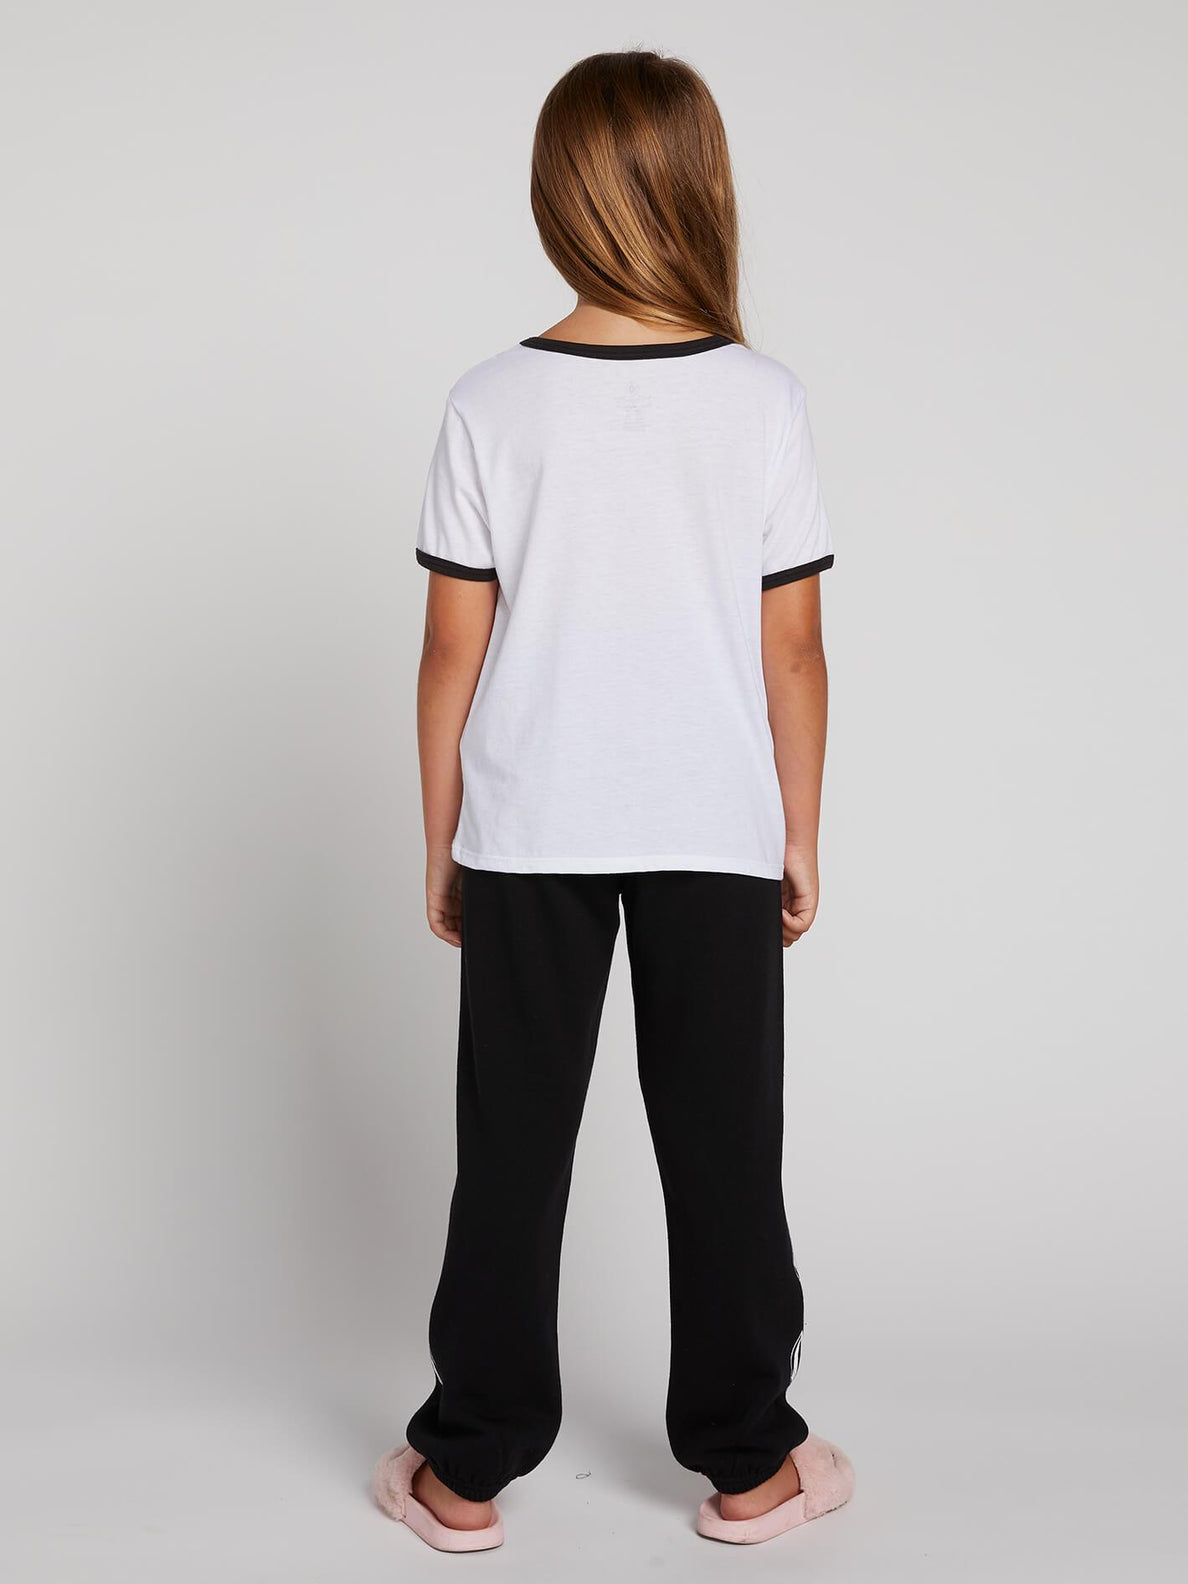 Big Girls Hey Slims Tee In White, Back View